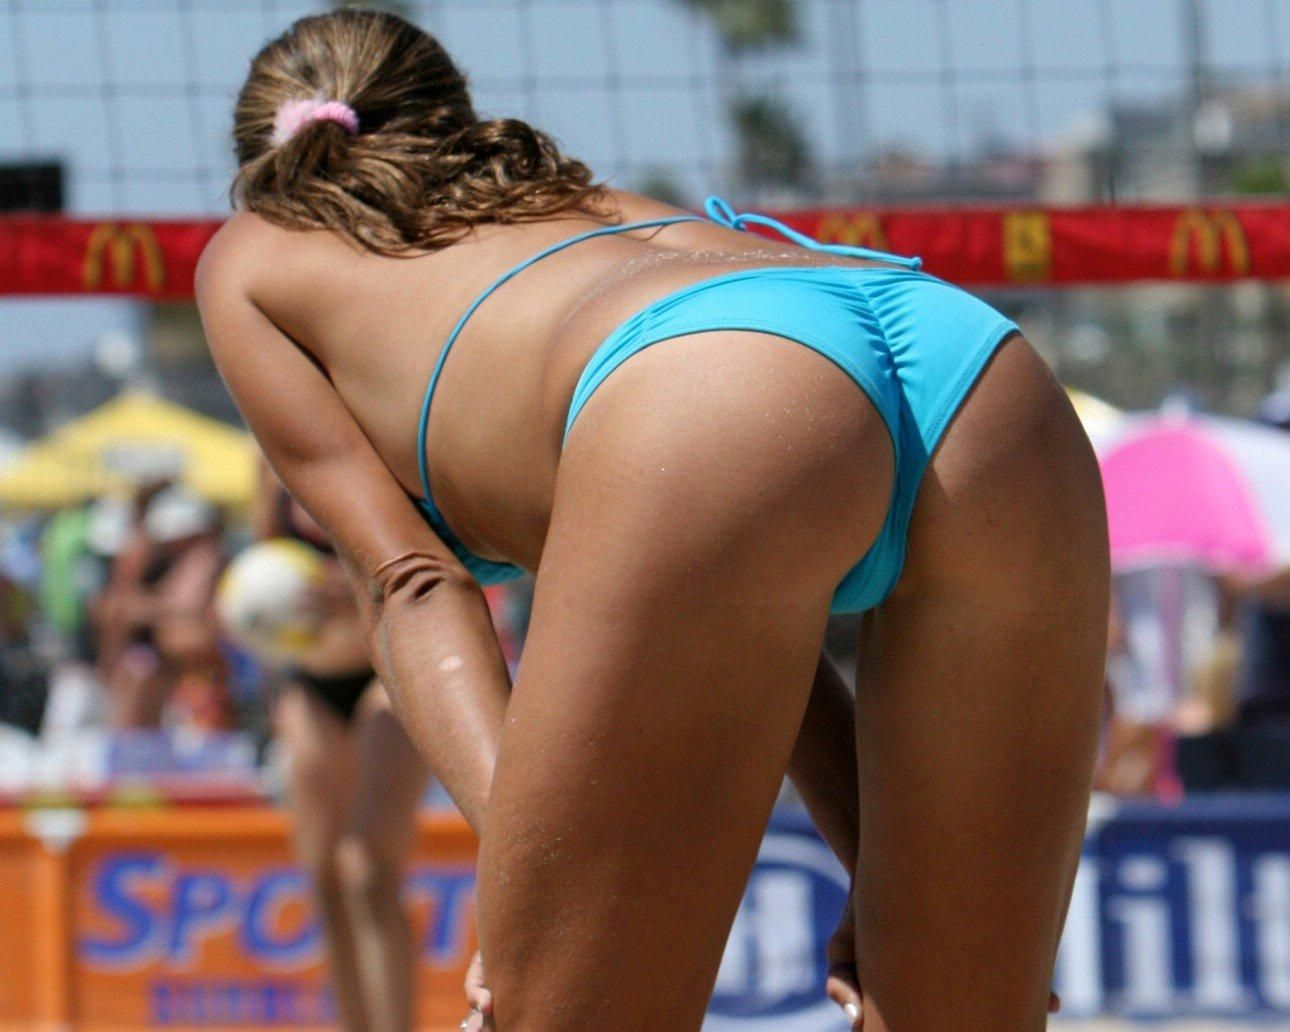 Volleyball Naked Girls